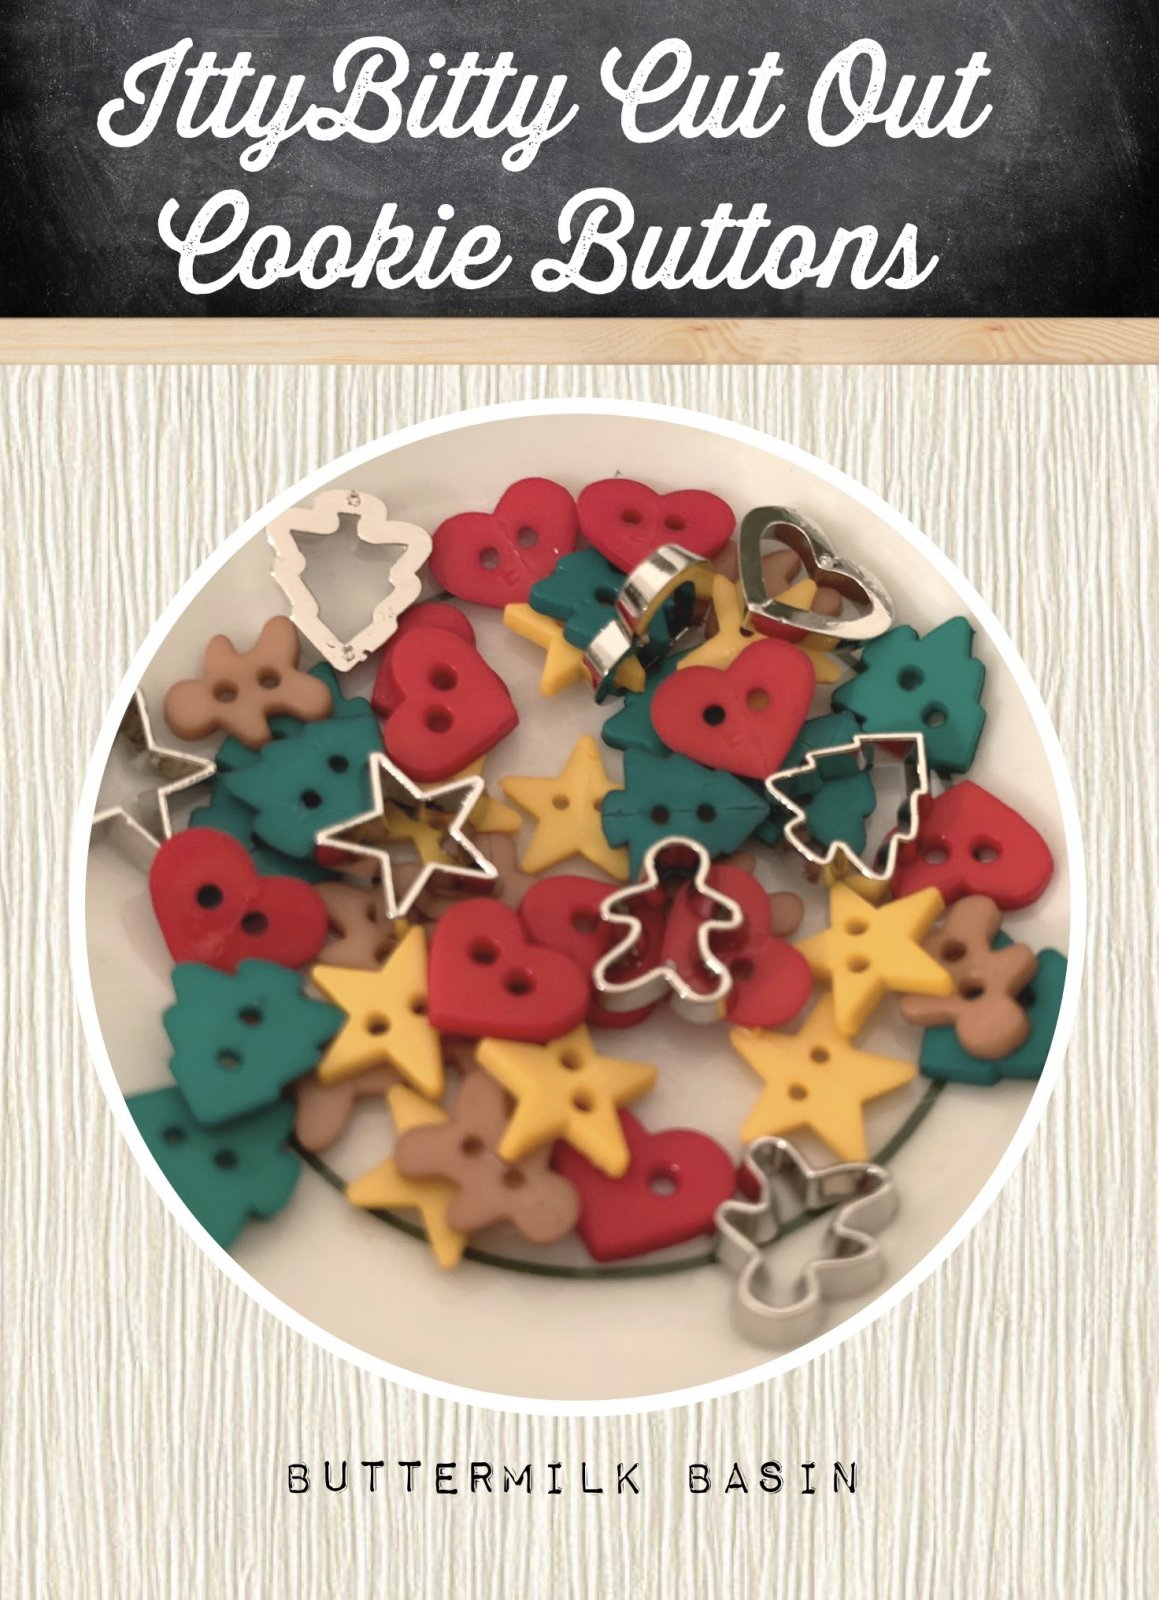 Itty Bitty Cut Out Cookie Buttons